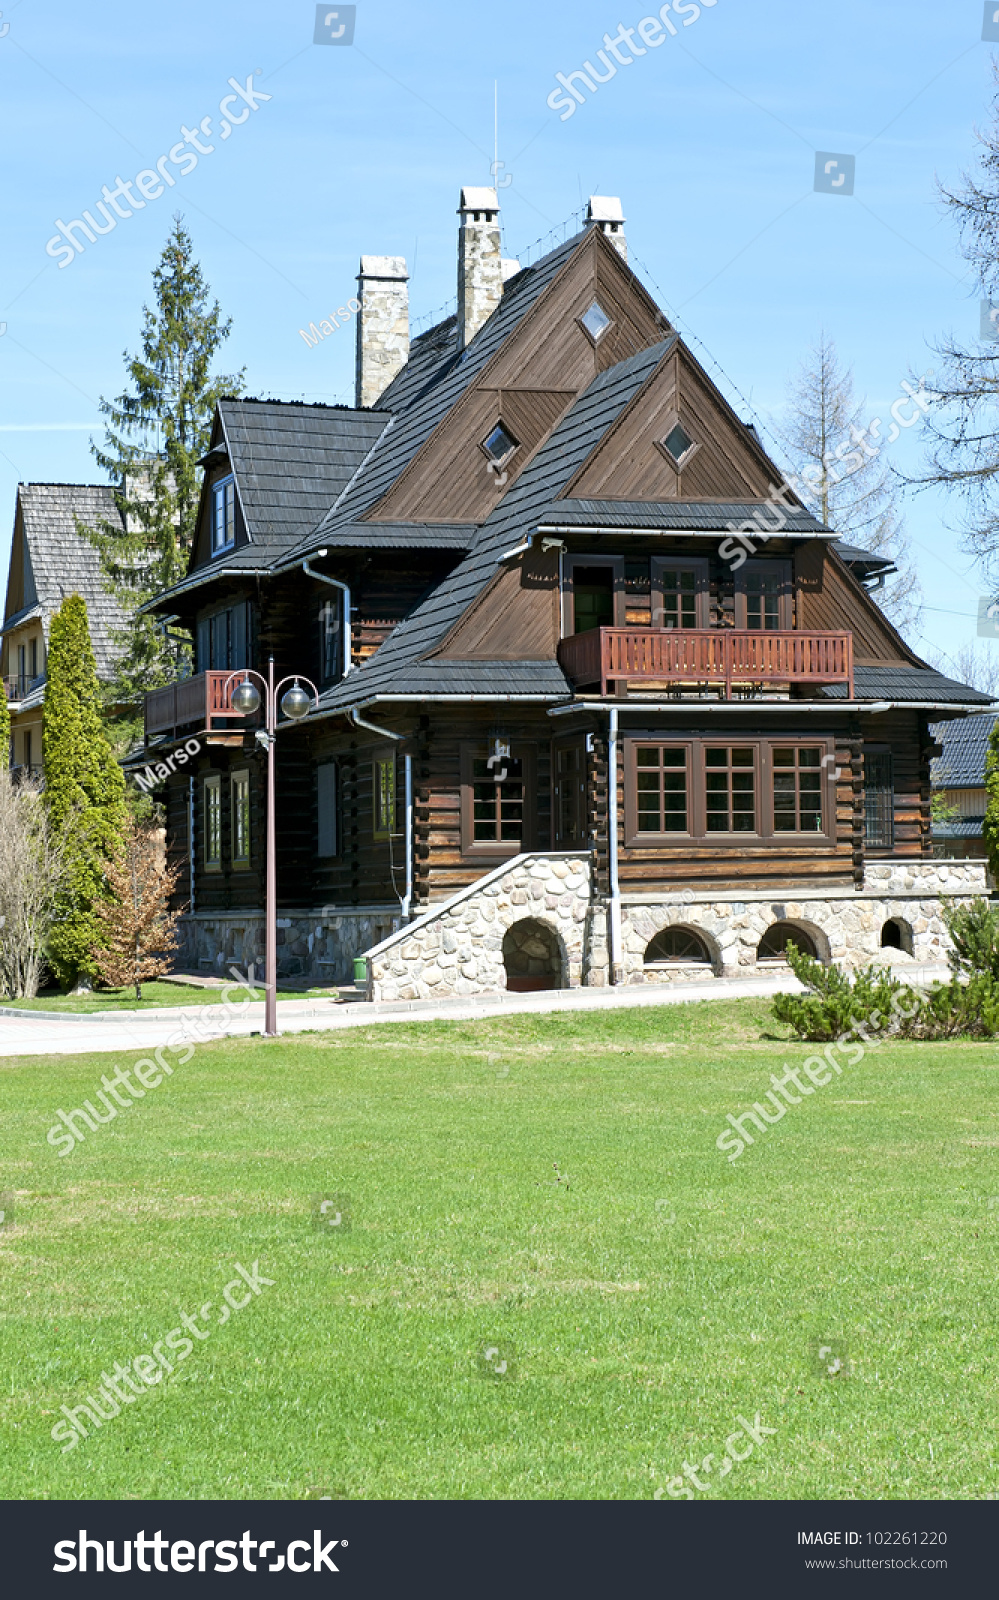 Traditional rustic wooden house in mountains poland stock photo 102261220 shutterstock - Traditional polish houses wood mastership ...